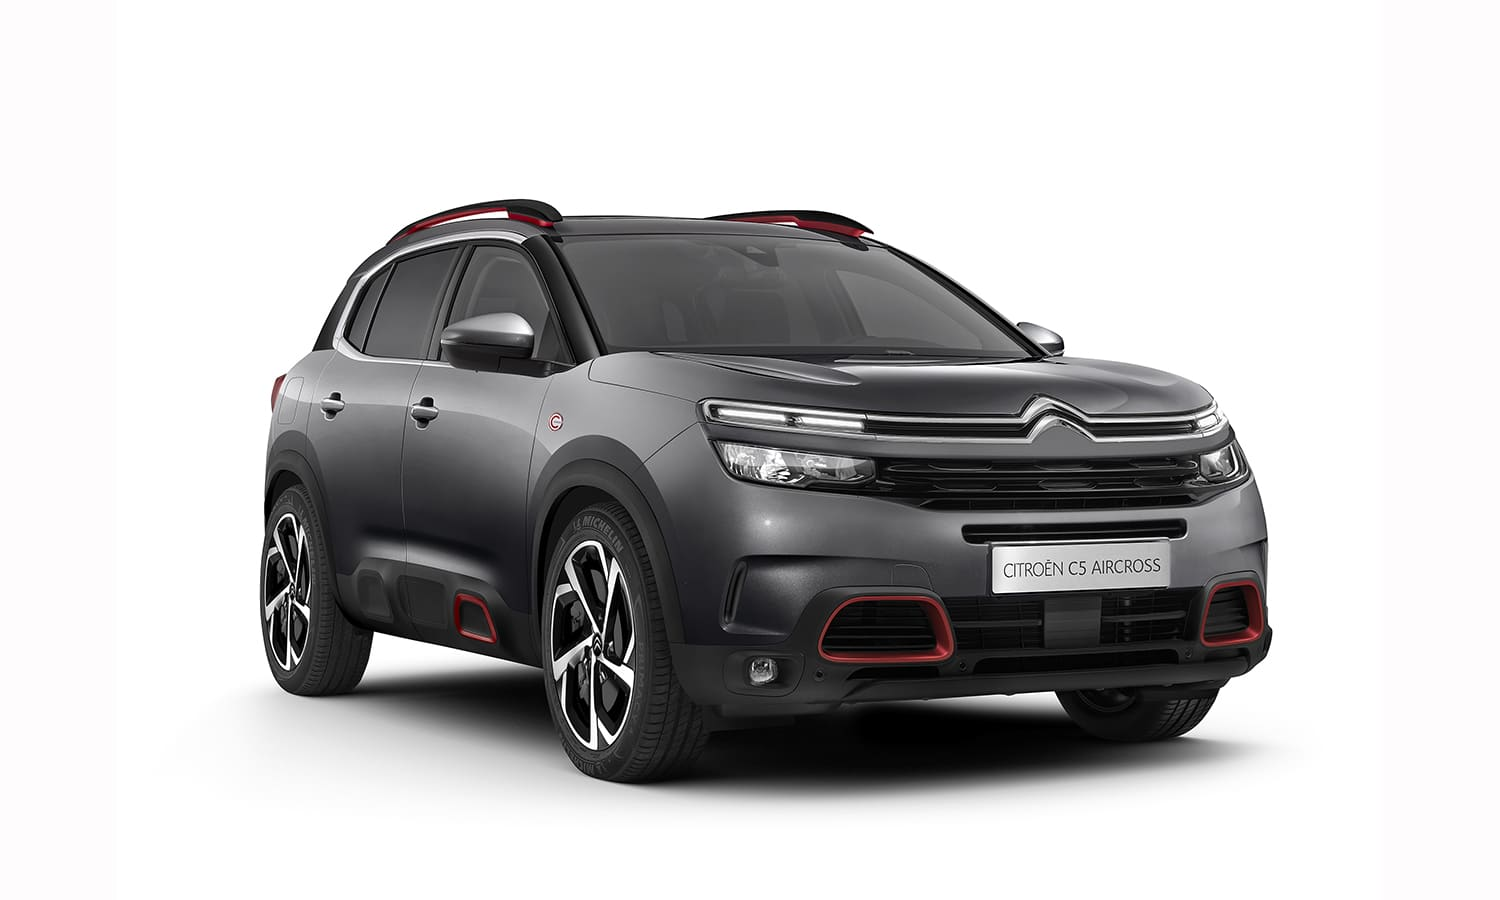 Citroën C5 Aircross C-Series frontal